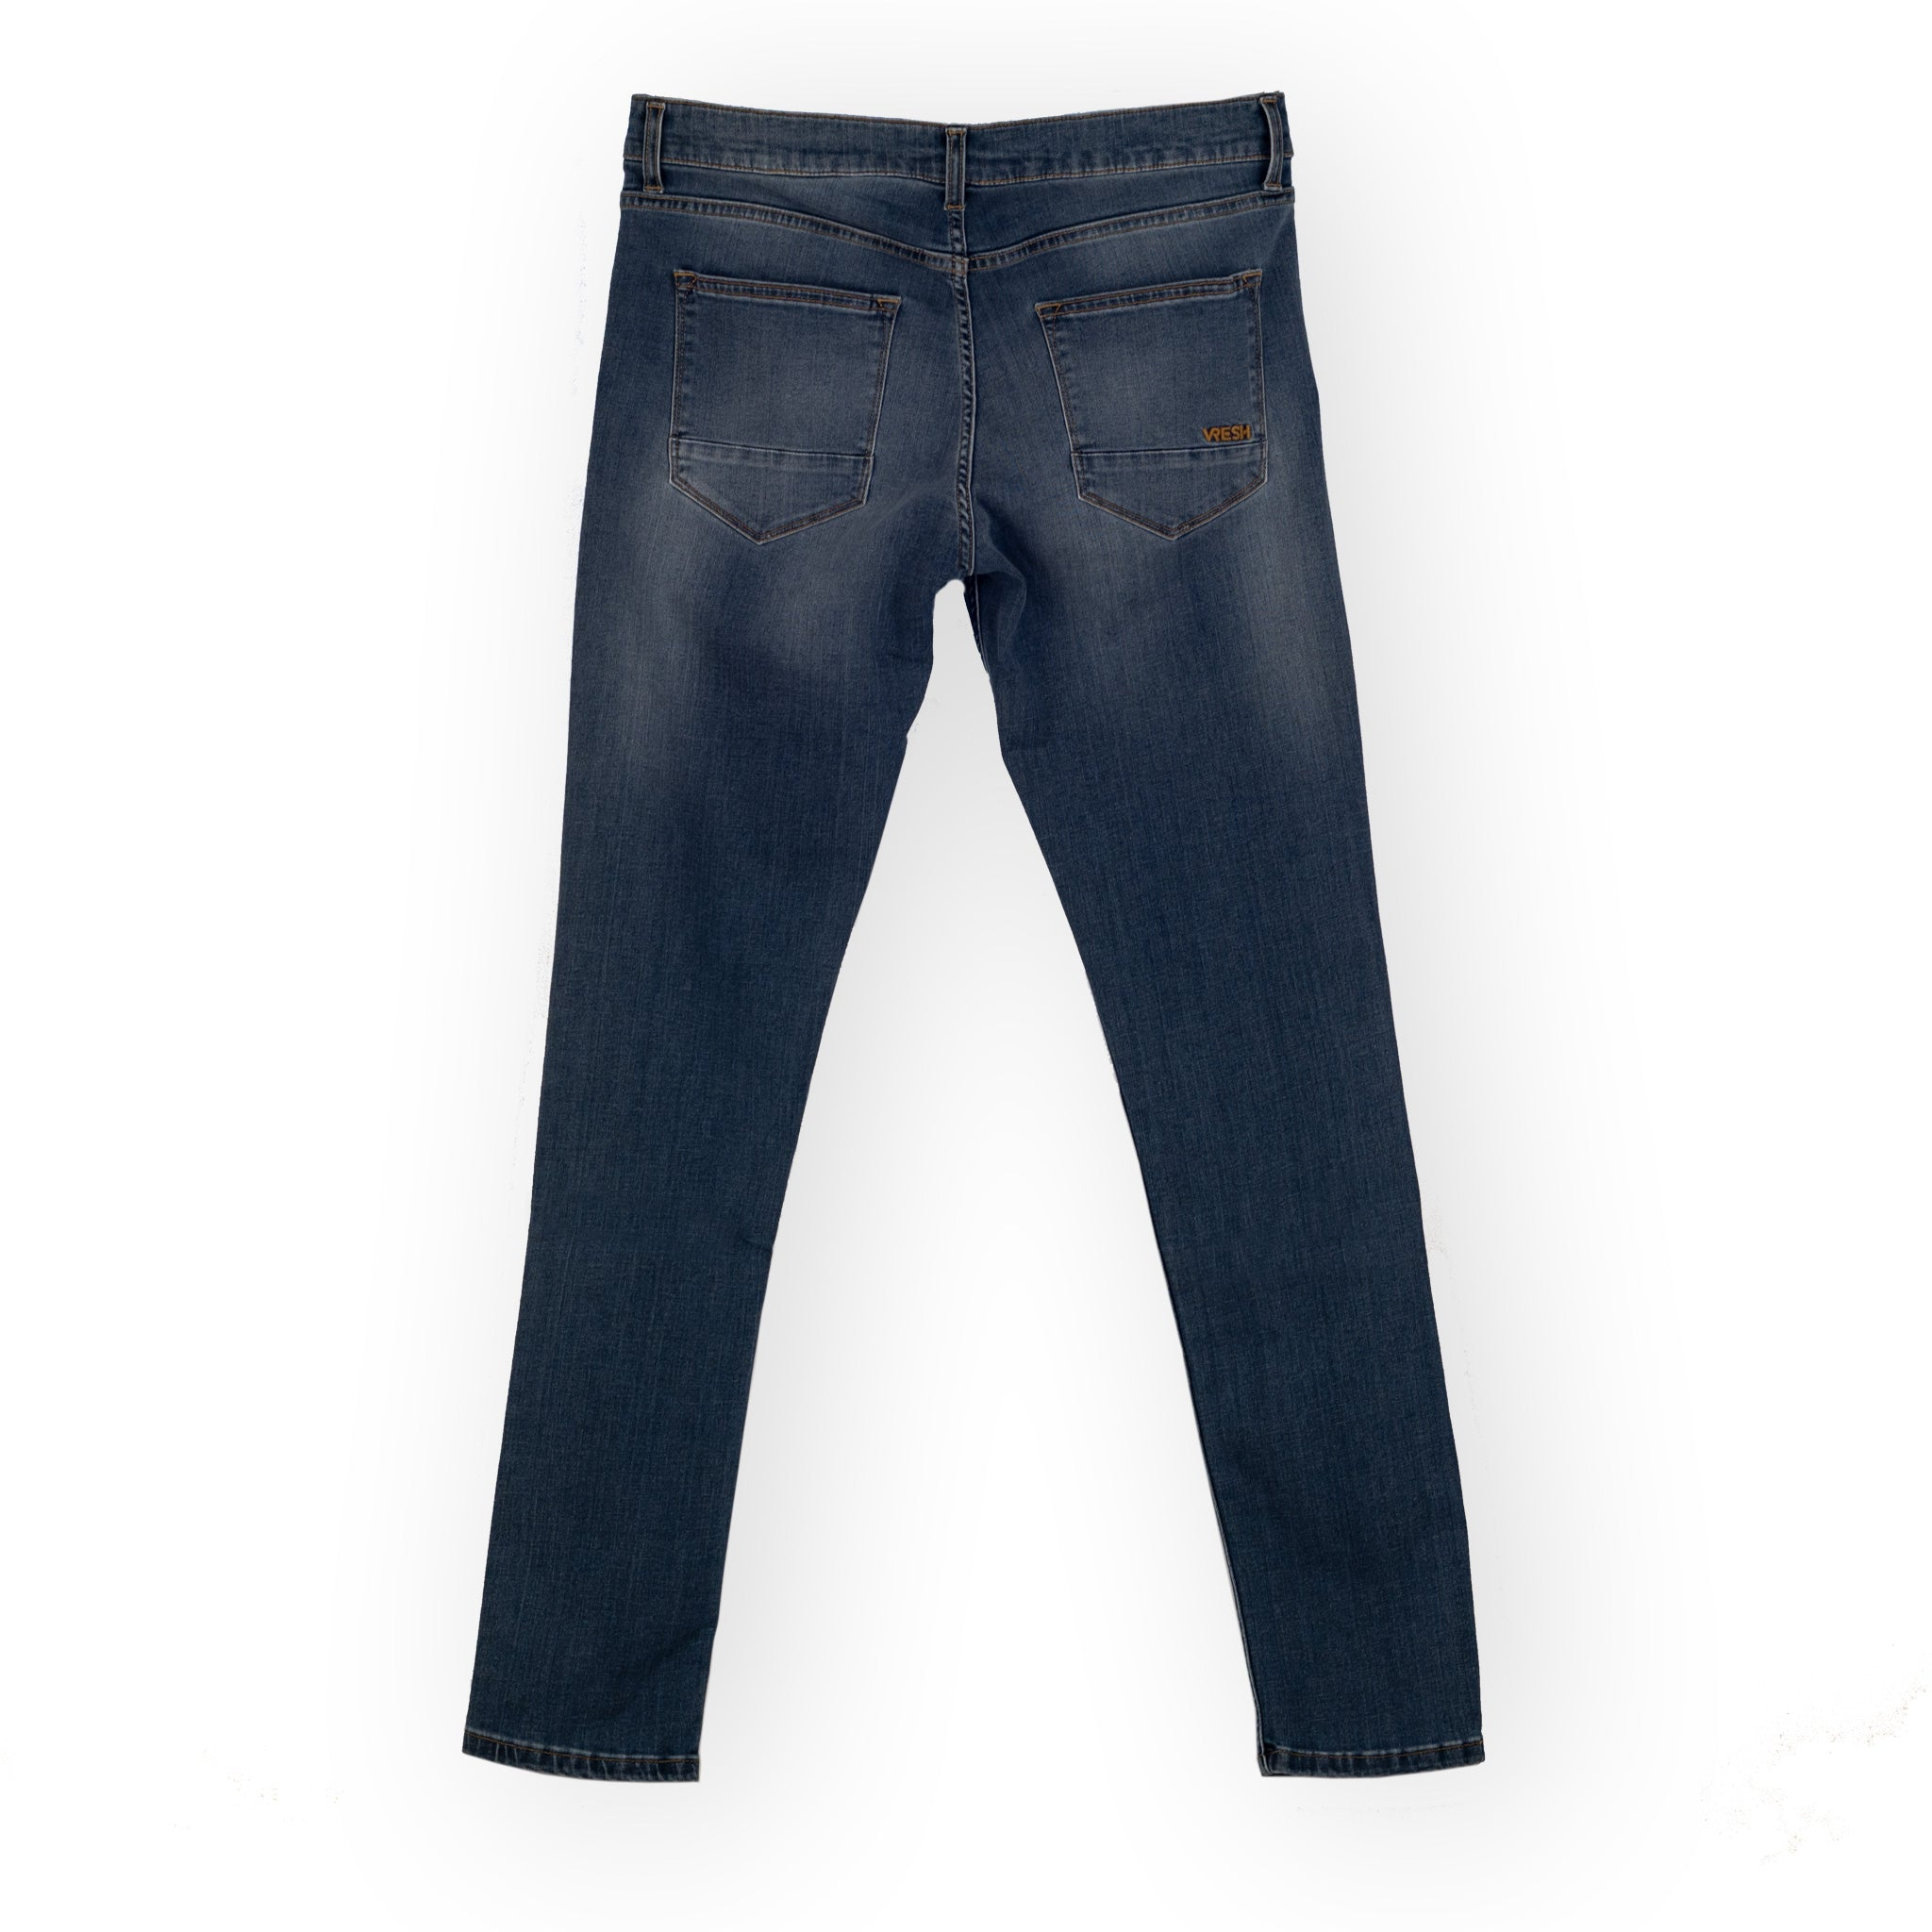 Vresh Jeans 2.0, Mid-washed, SLIM FIT